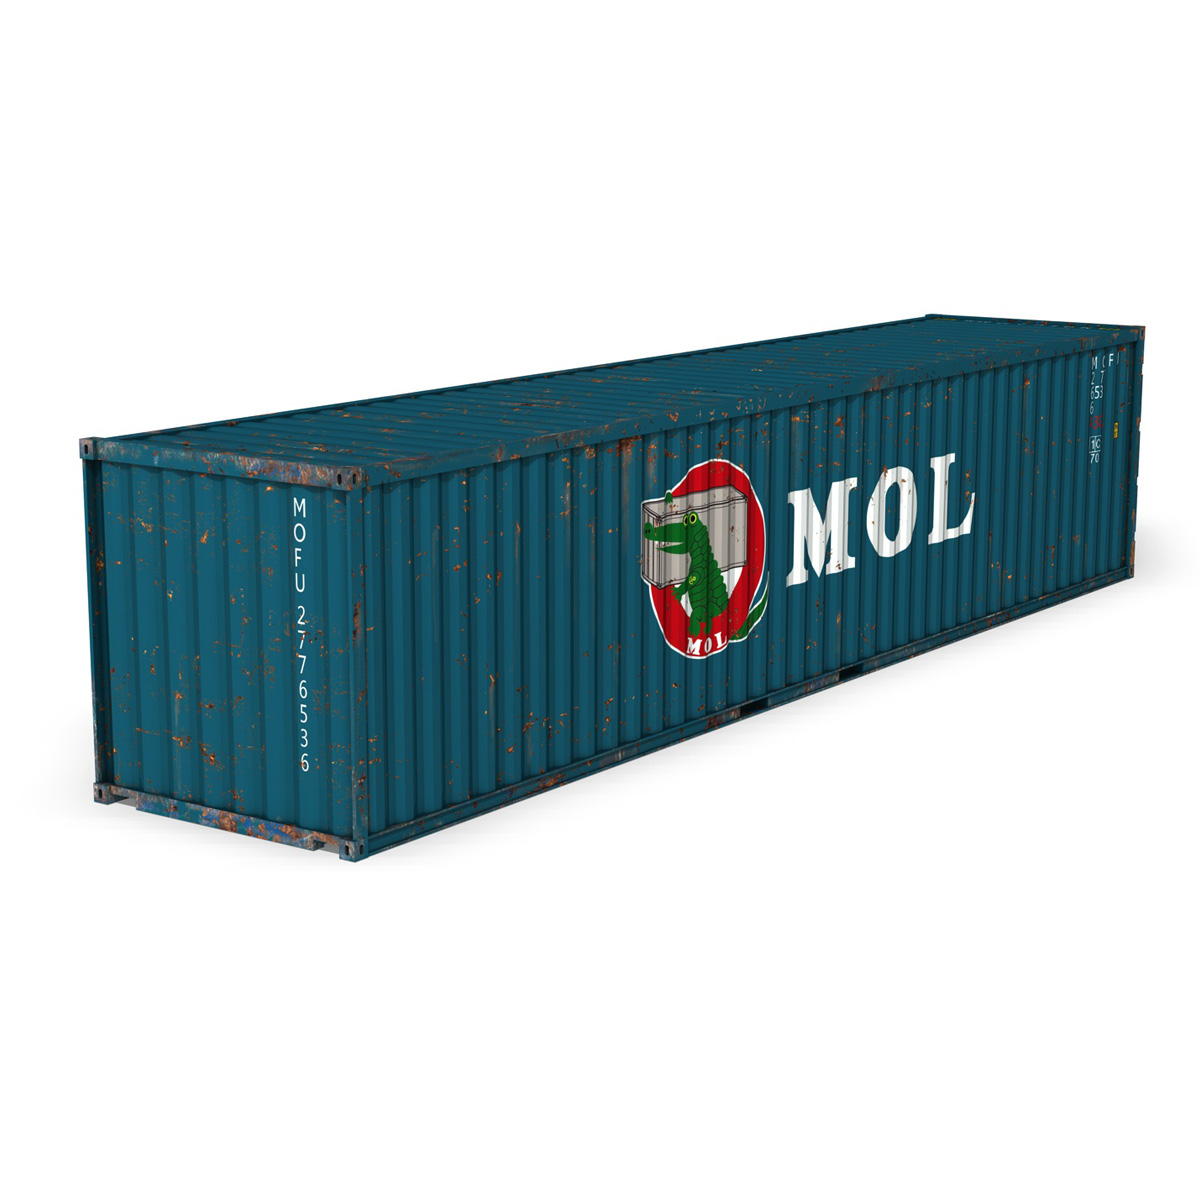 40ft shipping container – mol 3d model 3ds fbx lwo lw lws obj c4d 265137